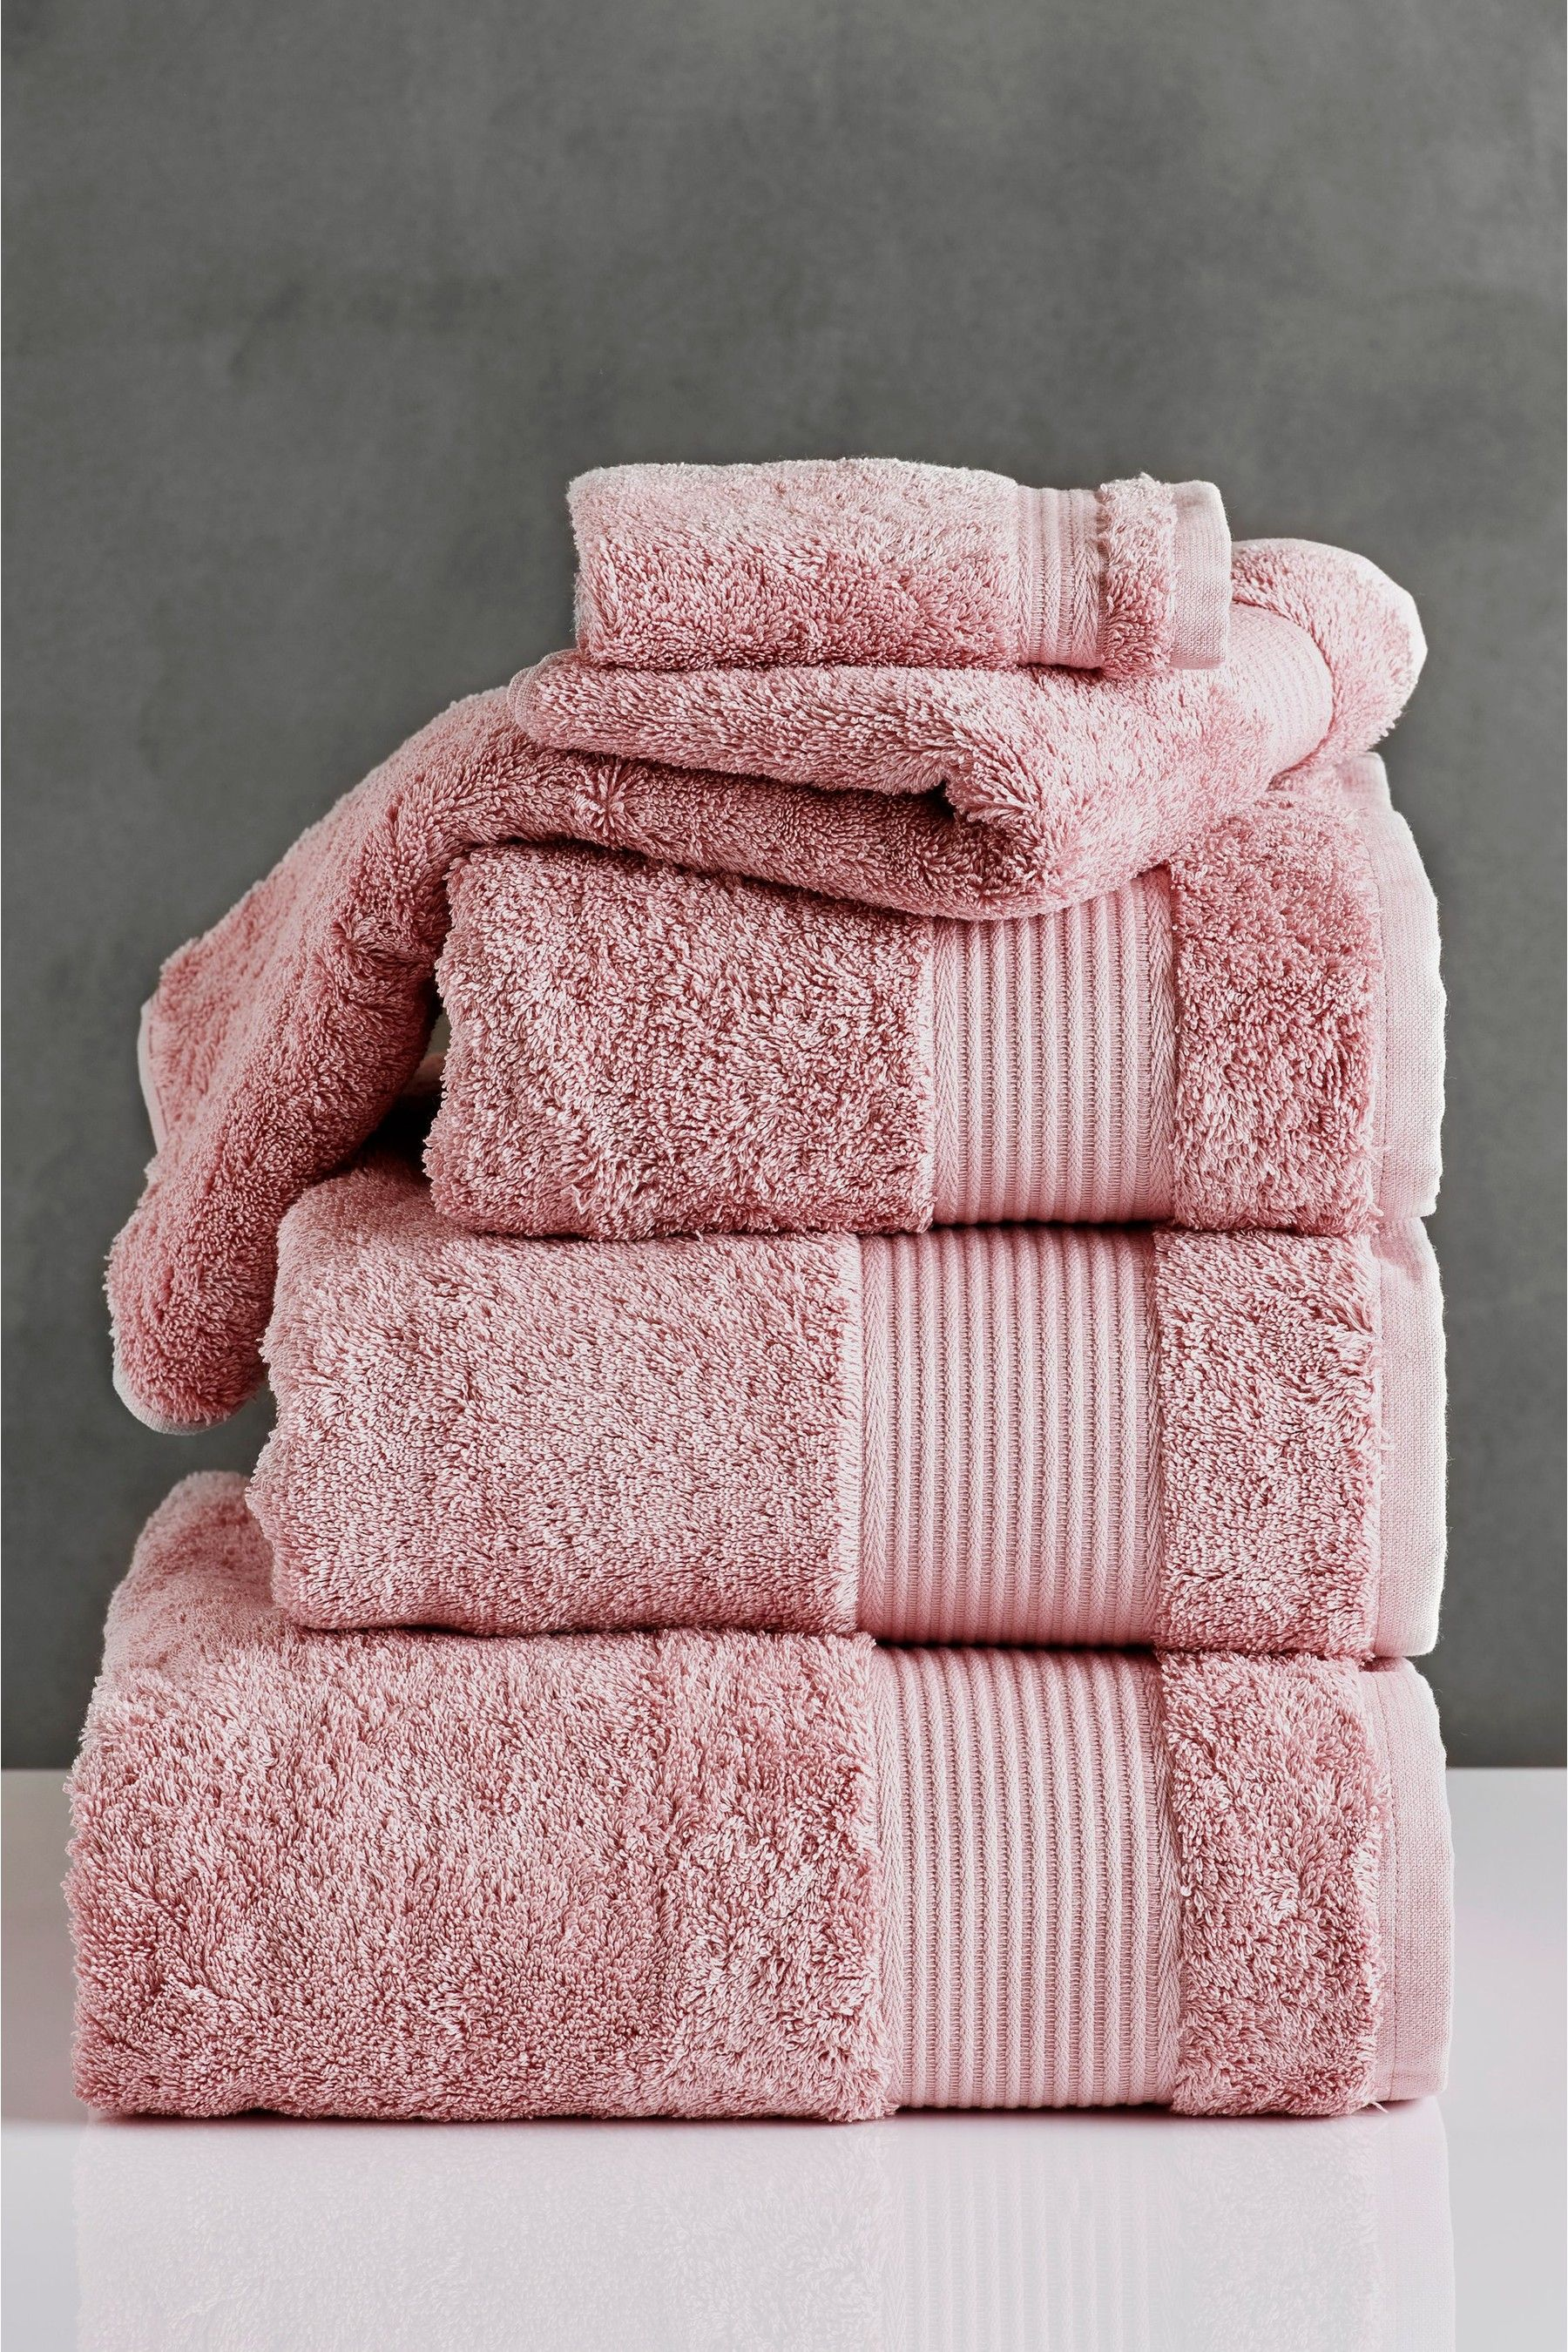 Egyptian Cotton Towels In 2020 With Images Egyptian Cotton Towels Cotton Towels Pink Towels